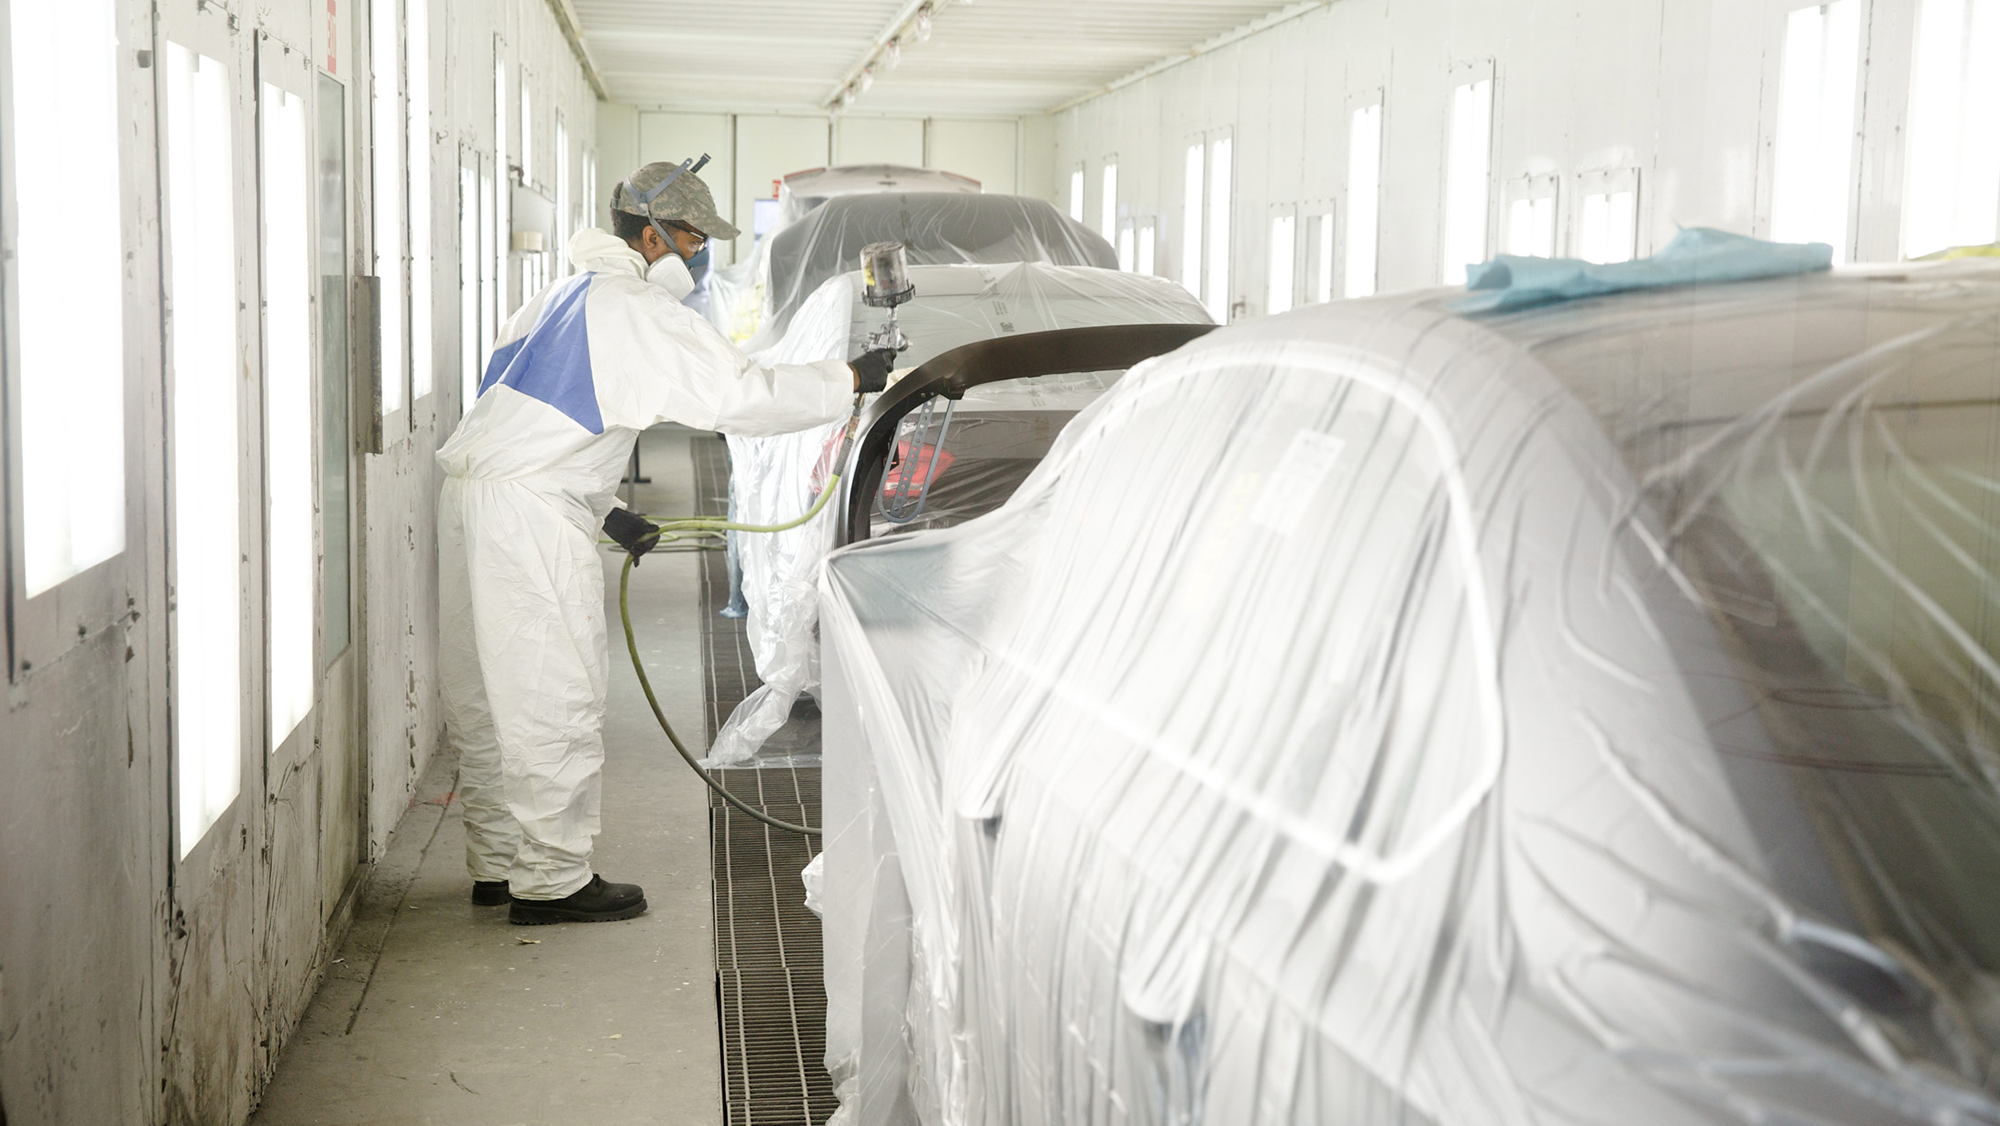 Worker painting car